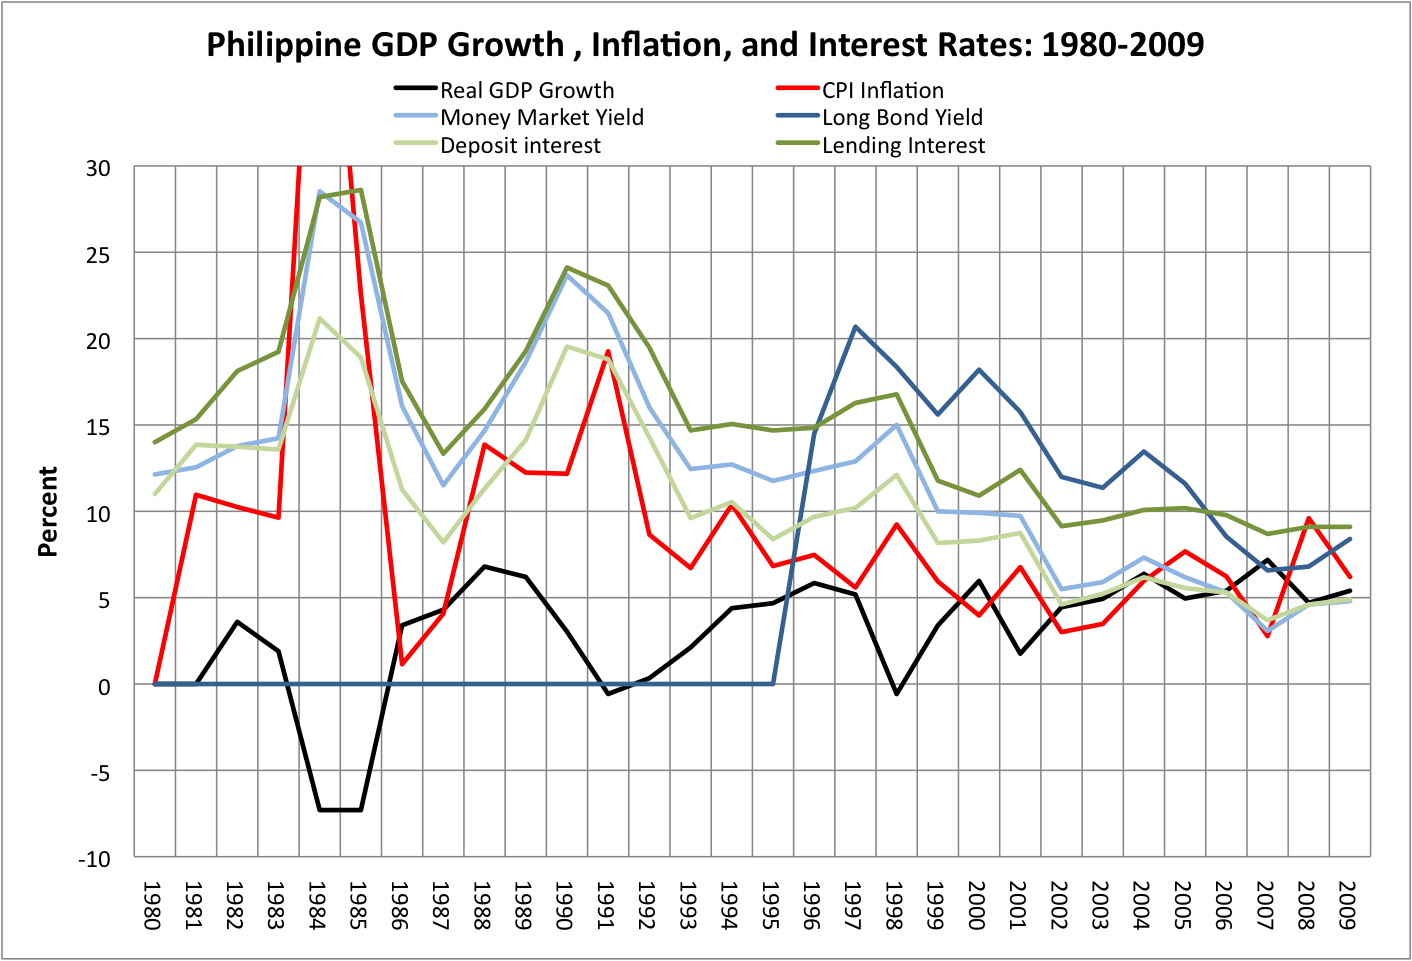 Philippines GDP Growth, Inflation, and Interest Rates